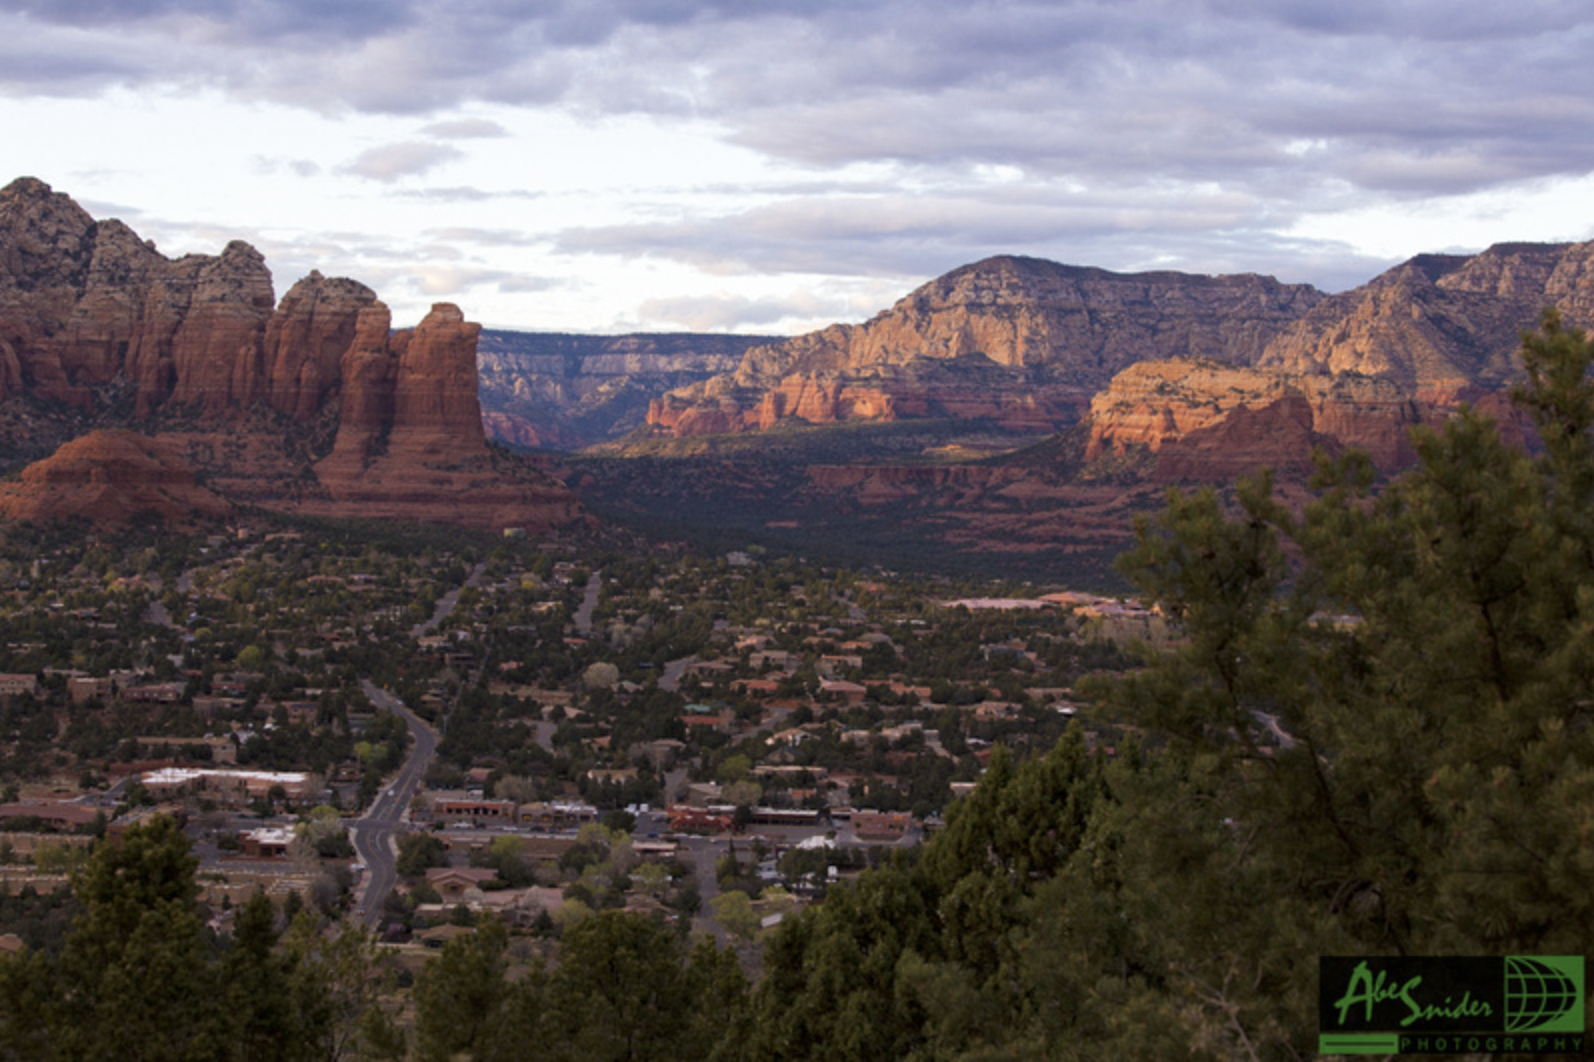 This was taken last week during our day trip down to Sedona, Arizona. It's one of the most magnificent places in Arizona and if you haven't been, stop reading this article and go there.